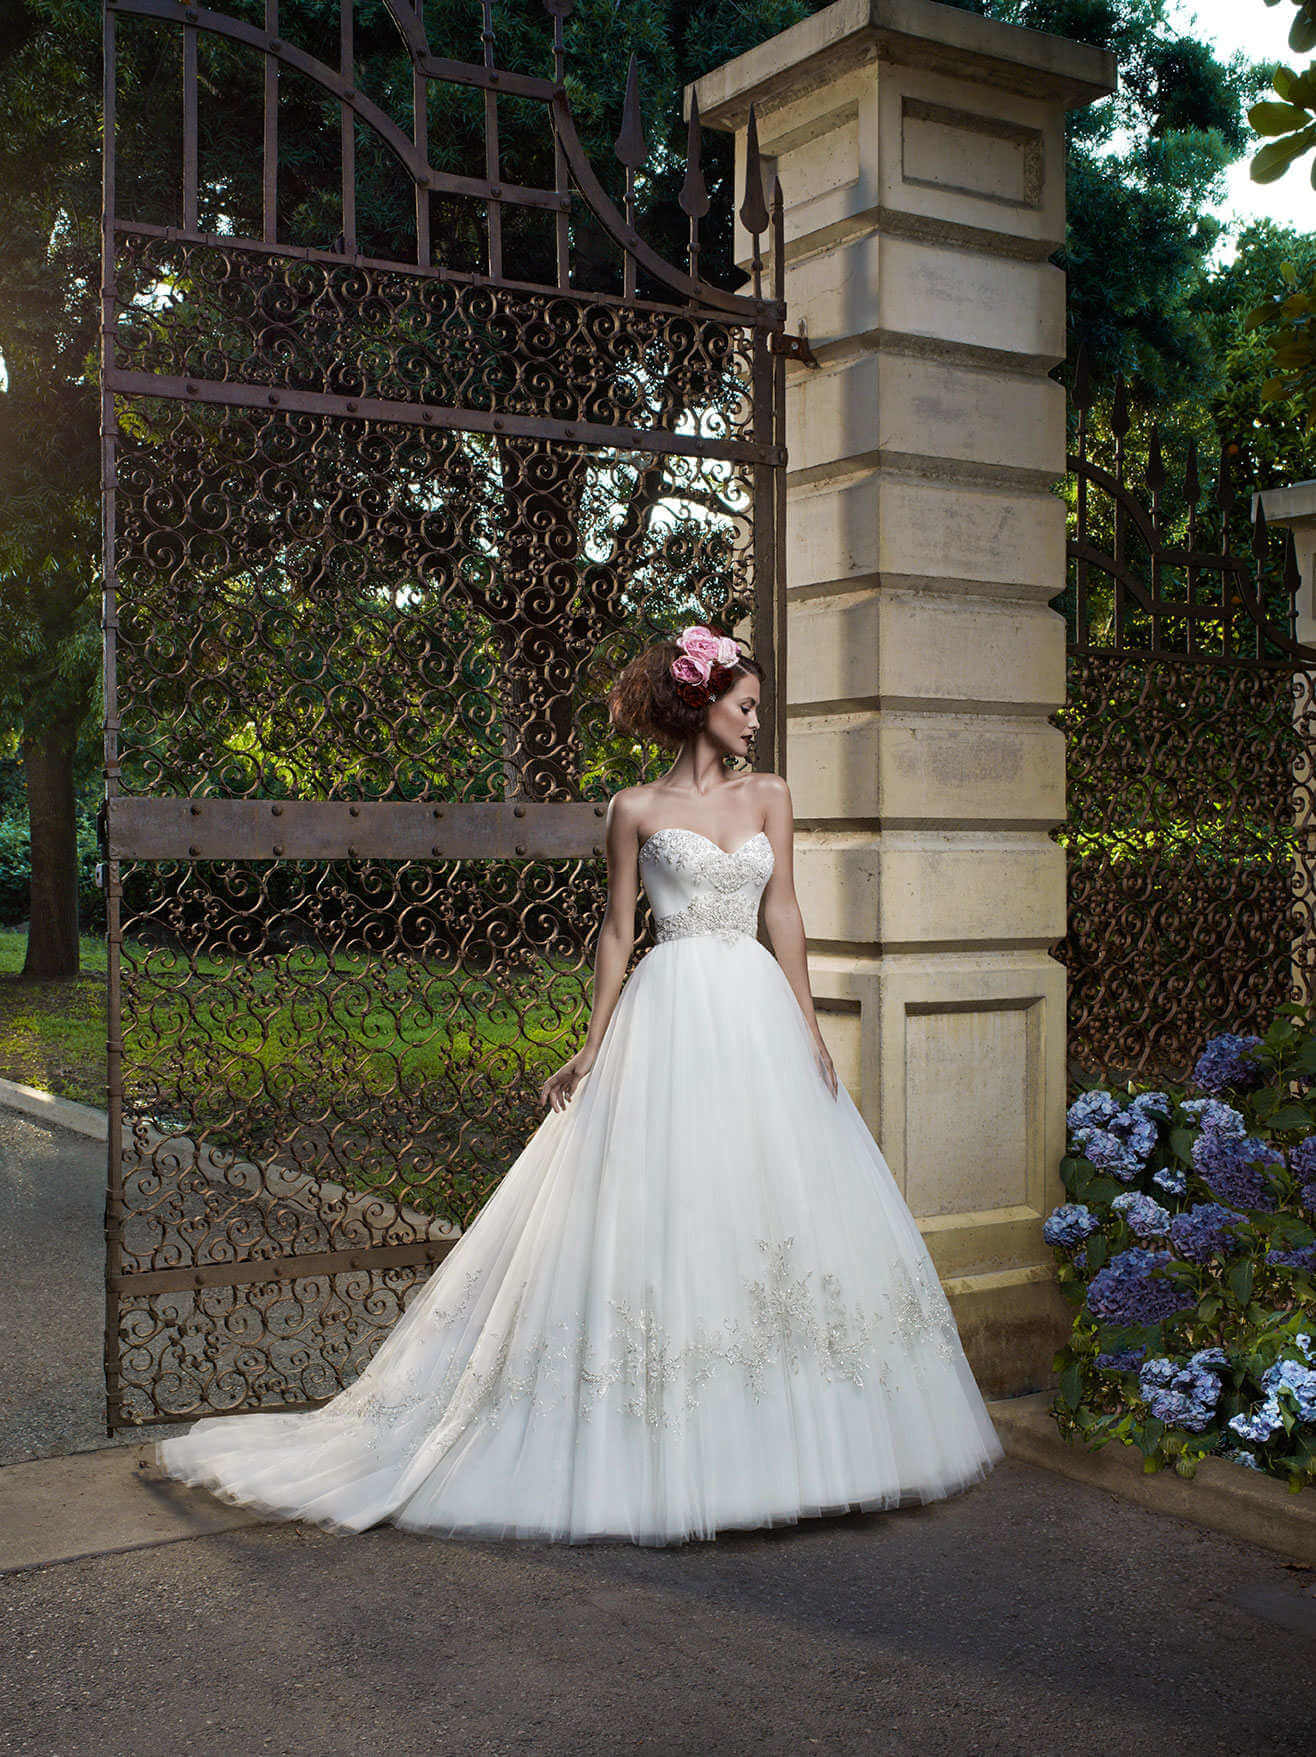 Casablanca – Size 6 A-Line dress | Second hand wedding dresses Doveton - Size 6